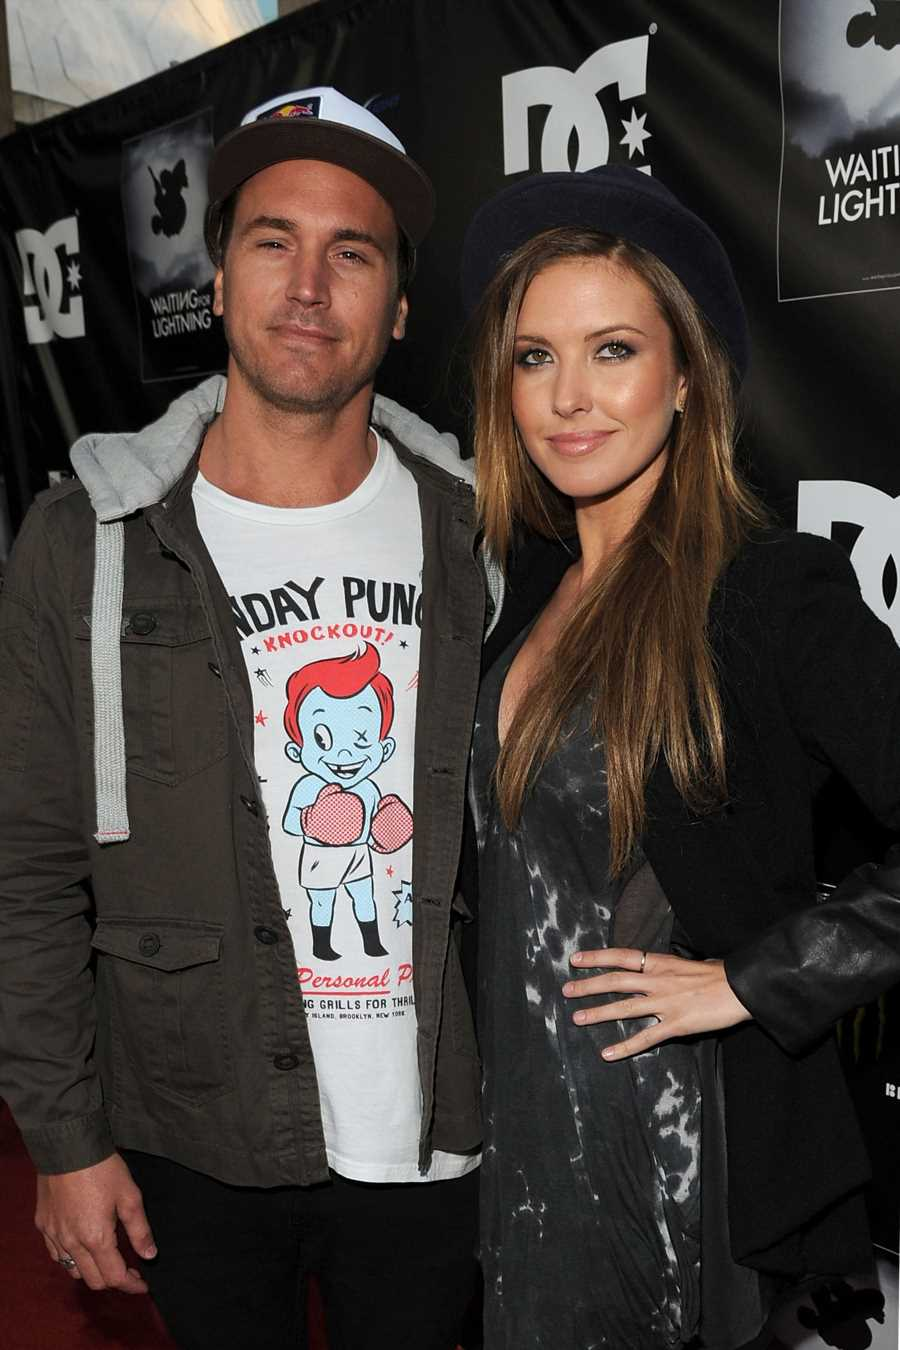 Audrina Patridge Accuses Ex-Husband Corey Bohan of Domestic Violence and Claims Abuse Is 'Continuing to Present'